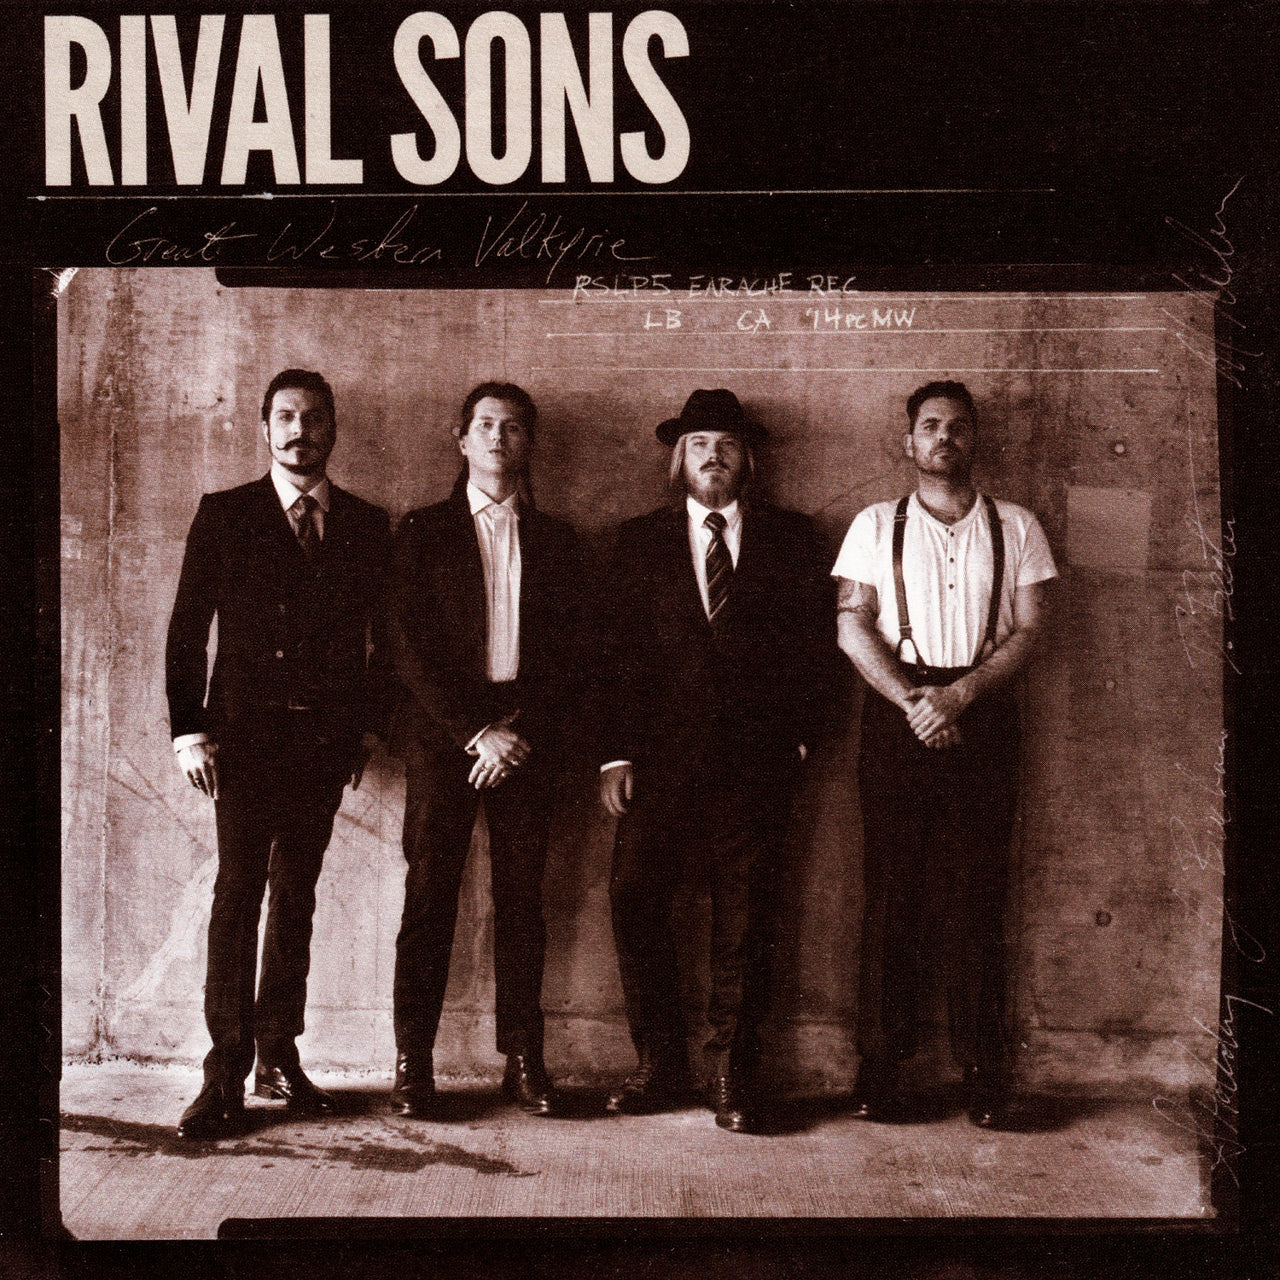 Rival Sons : Great Western Valkyrie  CD